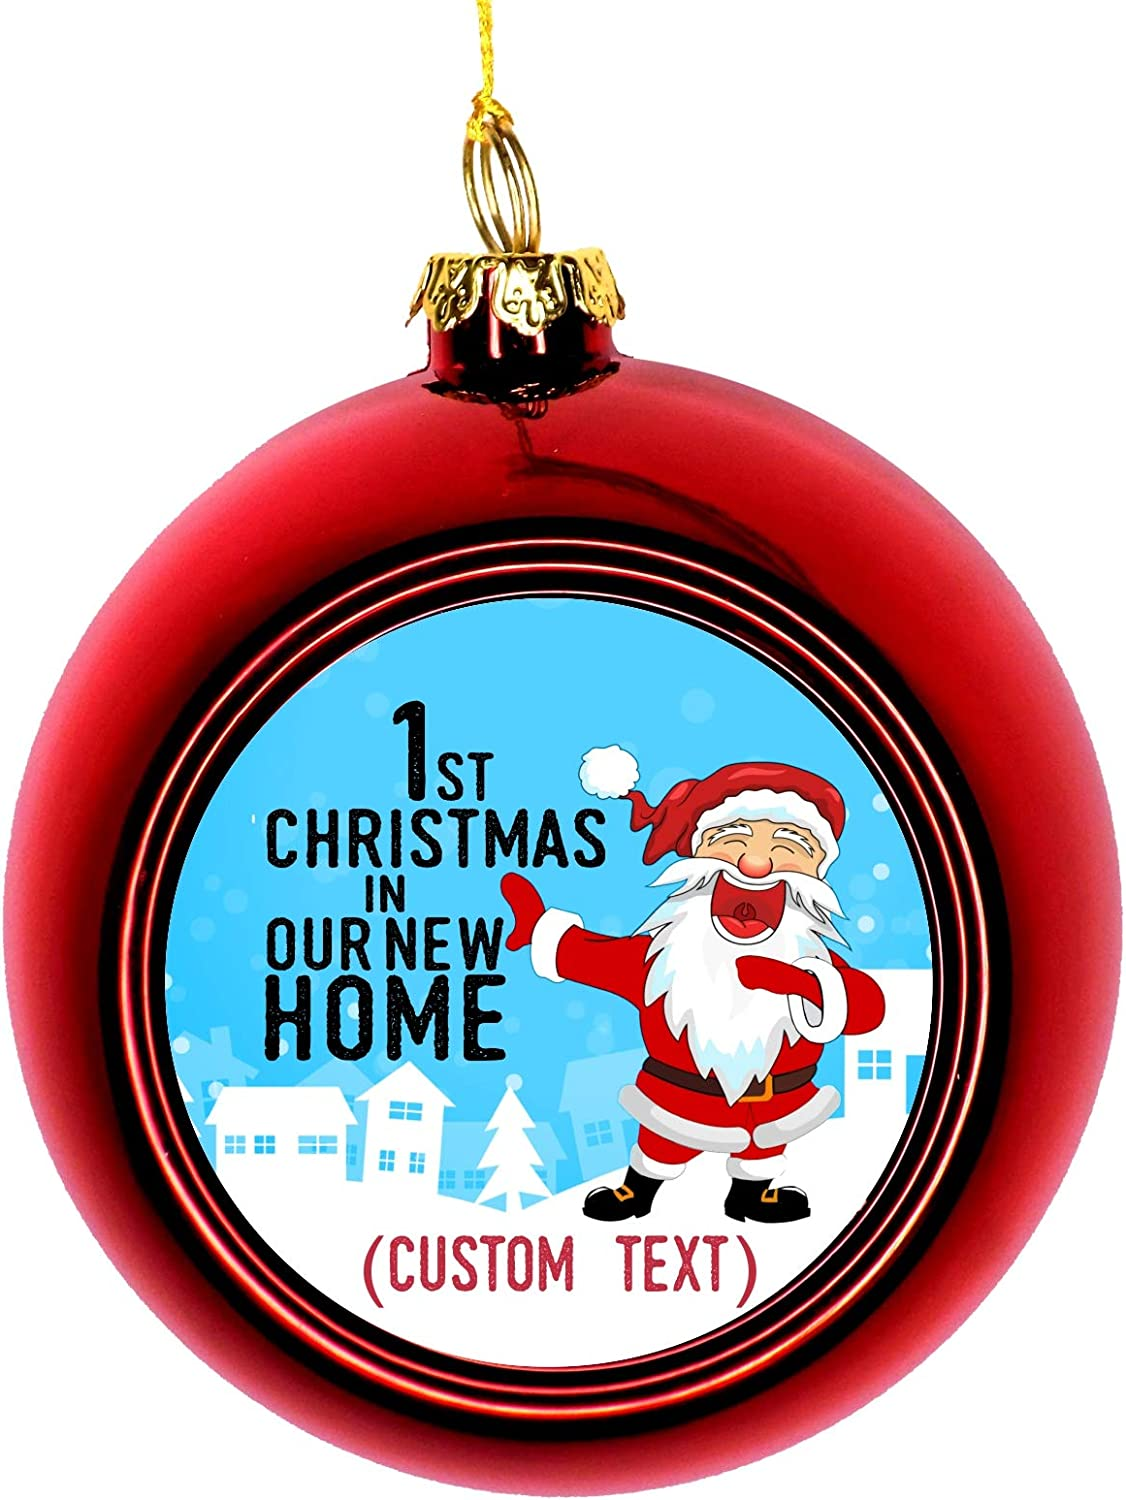 Lea Elliot Inc. Christmas House Ornaments Ho New - in San Antonio Mall First Over item handling ☆ Year